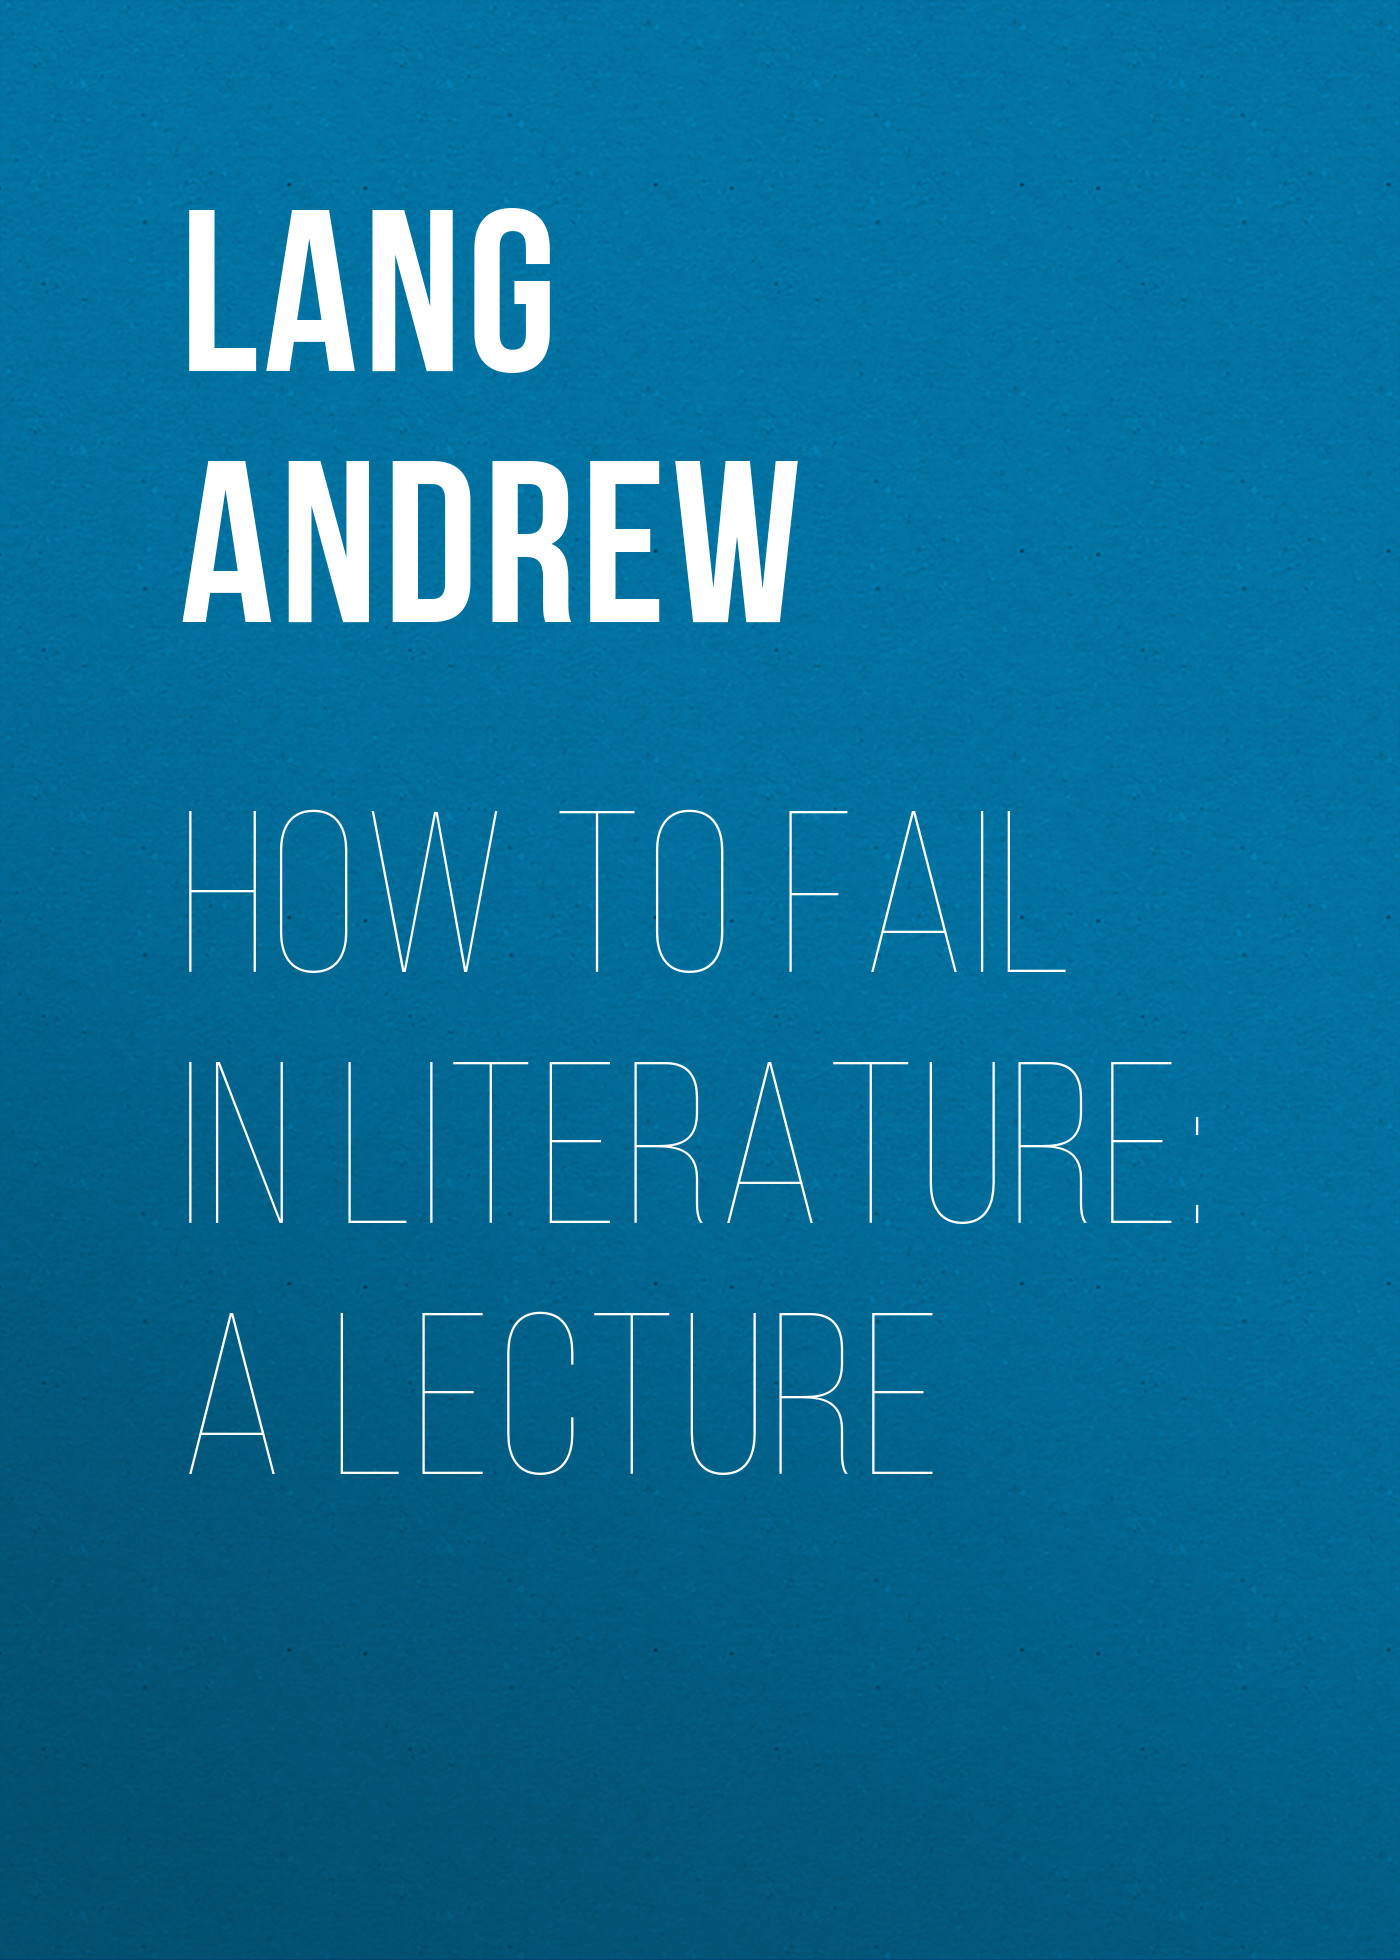 Lang Andrew How to Fail in Literature: A Lecture fail fast fail often